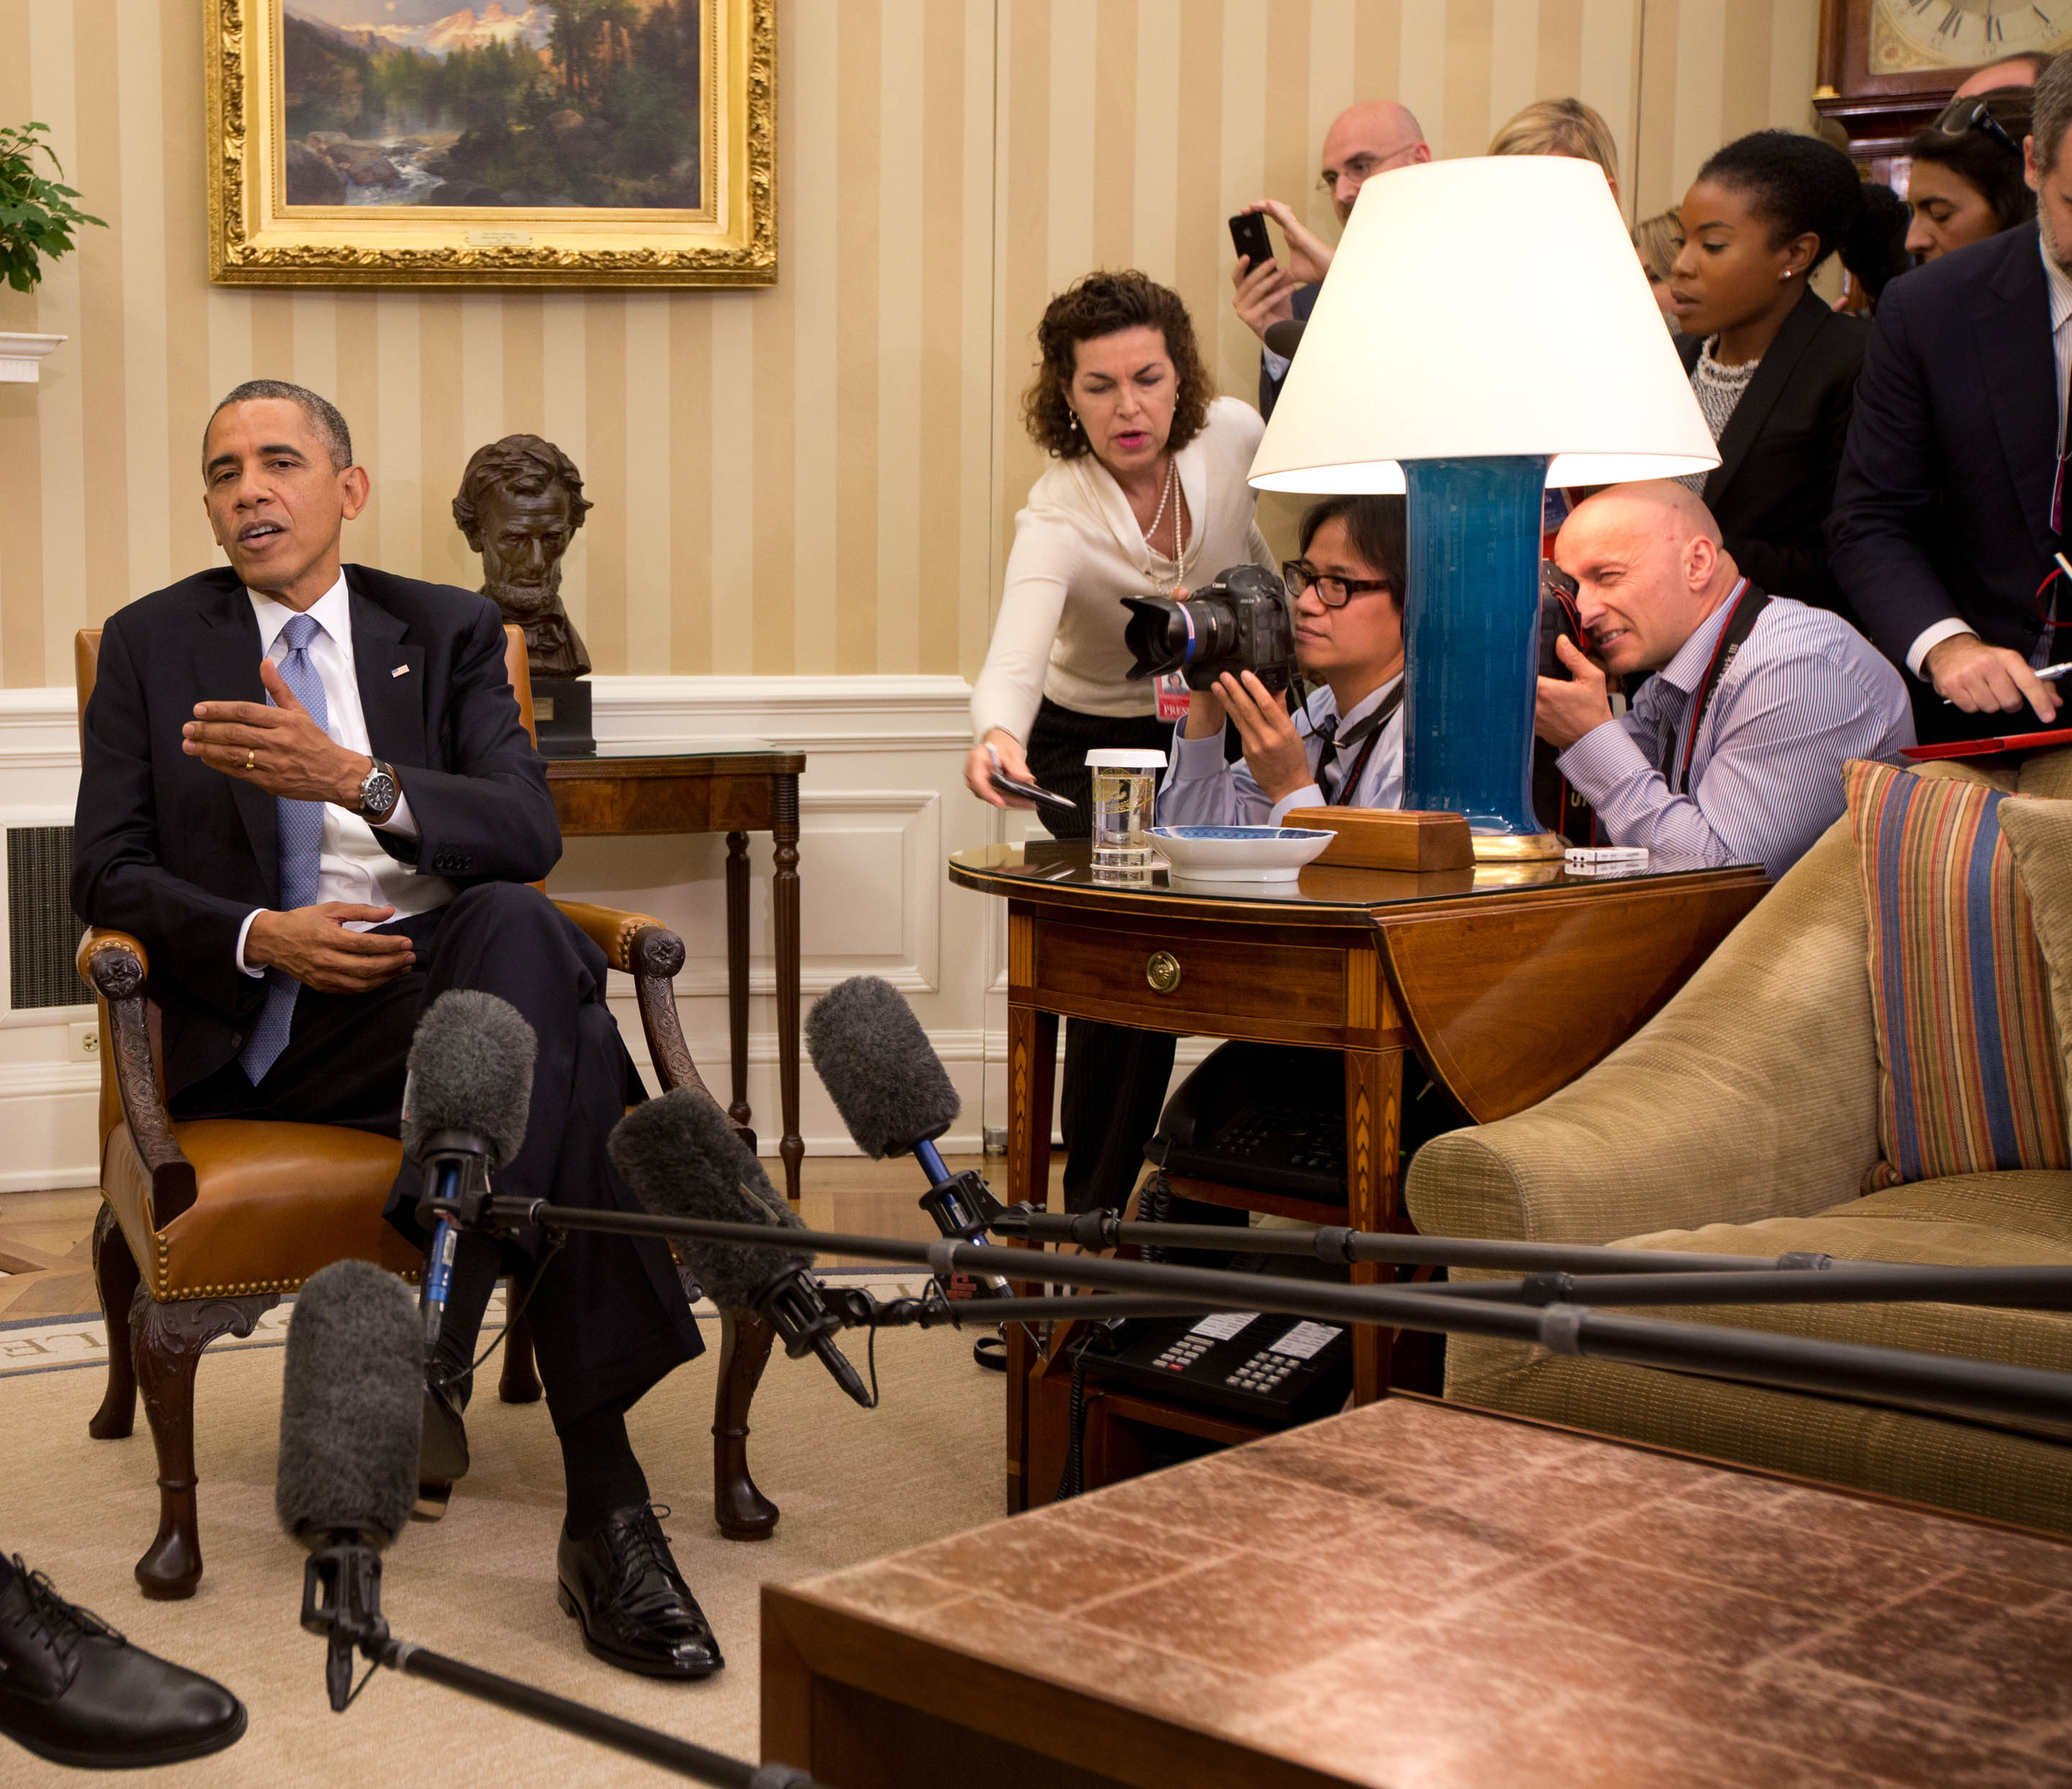 """Associated Press photojournalist Charles Dharapak and Reuters photojournalist Jason Reed try to photograph President Barack Obama during one of the Oval Office scrams, where a tight pool is ushered in for no more than a few moments to shoot an orchestrated """"photo op"""" and then just as quickly they are herded out again. Photograph by Stephen Crowley, The New York Times"""